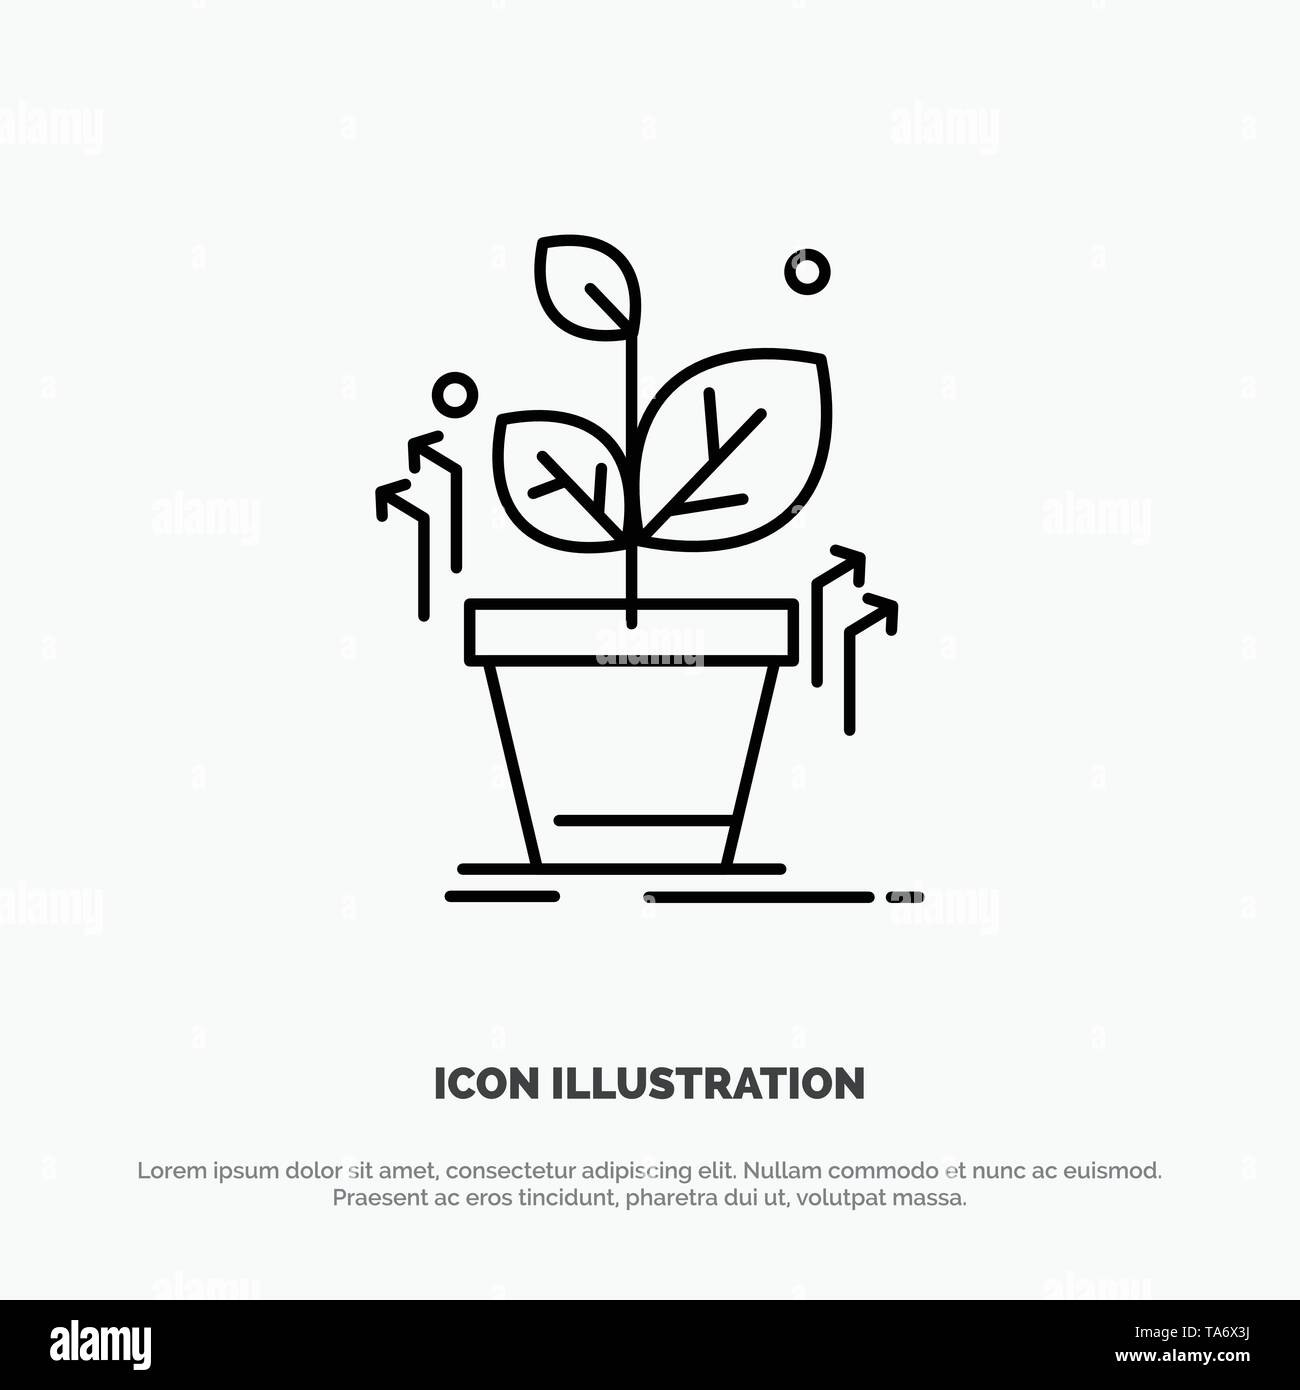 Plant, Grow, Grown, Success Line Icon Vector - Stock Image